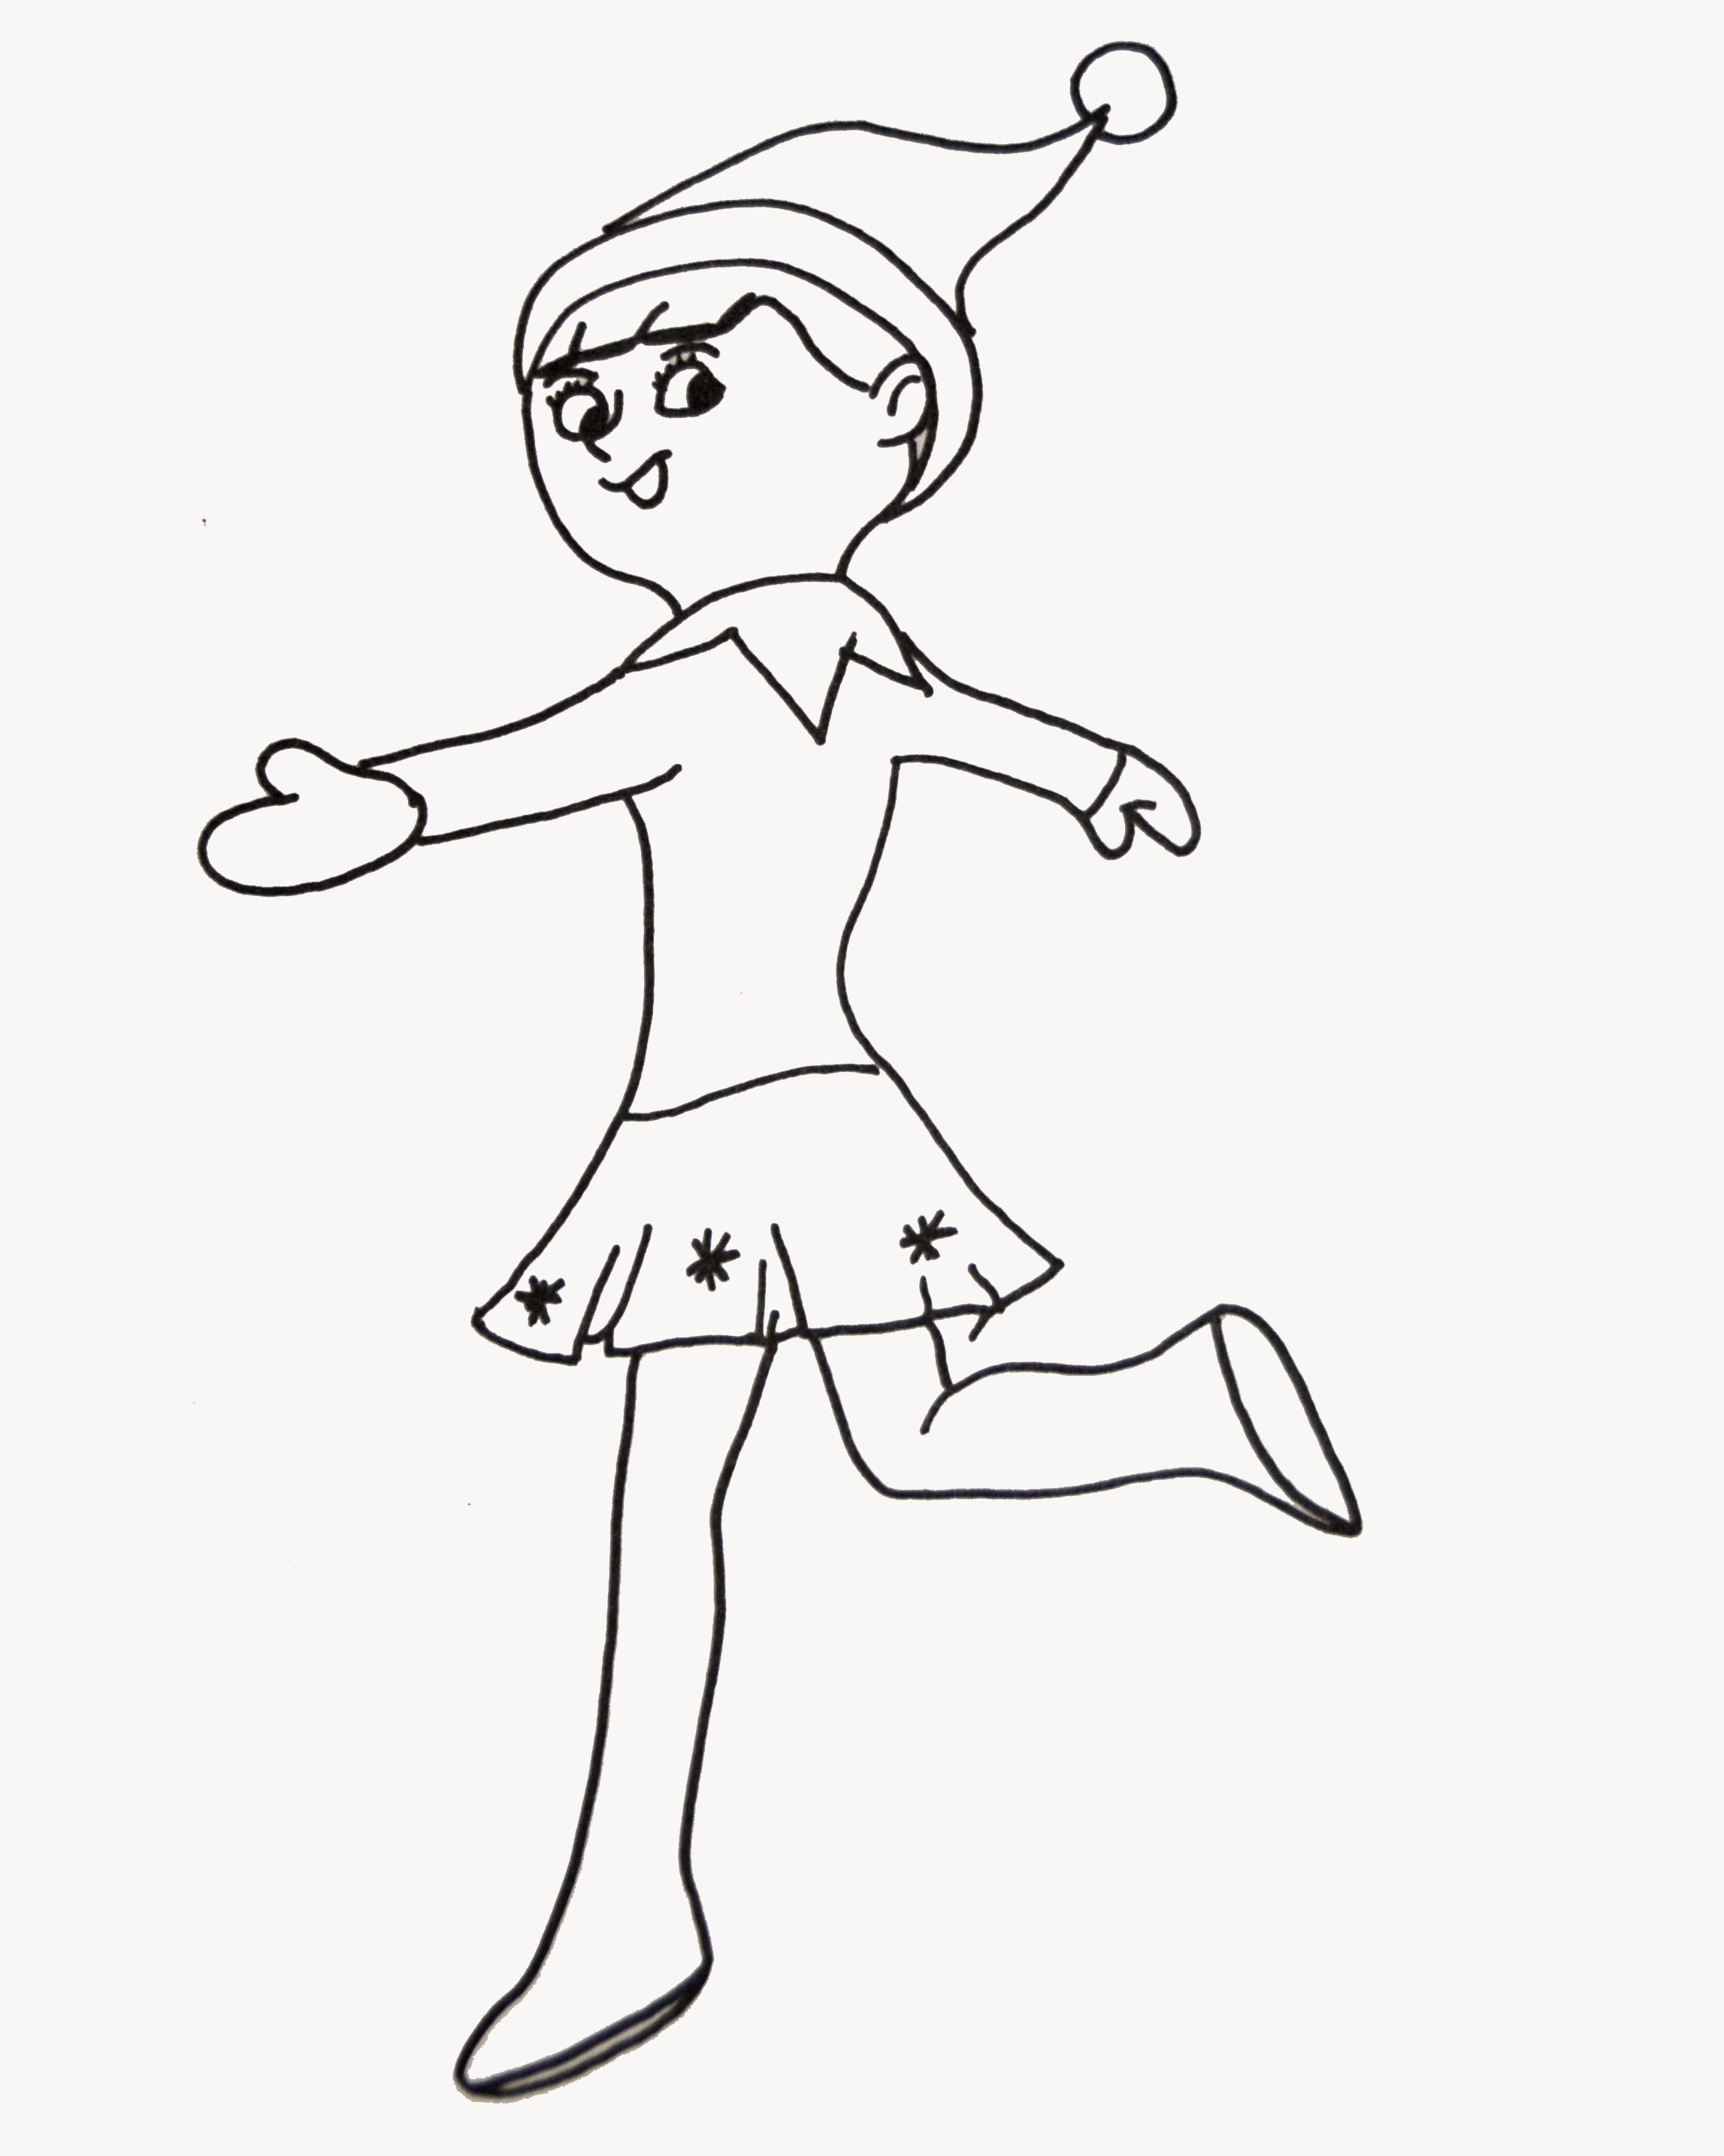 Christmas Elf Coloring Pages Printable At Getdrawings Com Free For